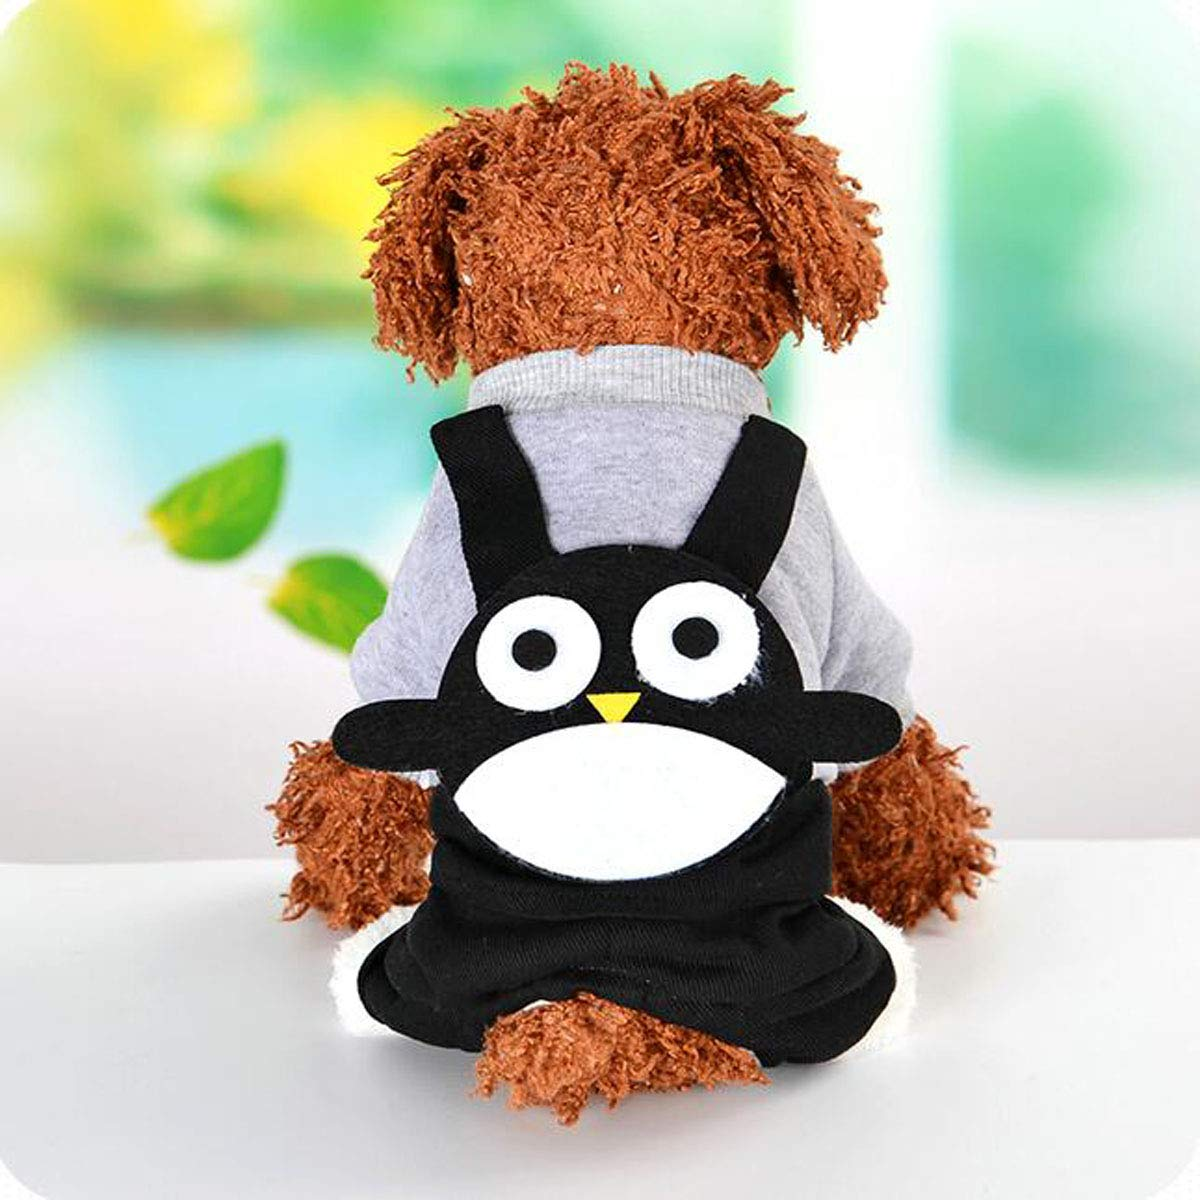 Black S Black S Pet Dog Autumn and Winter Clothes, Small Dogs Warm Clothes, (color   Black, Size   S)